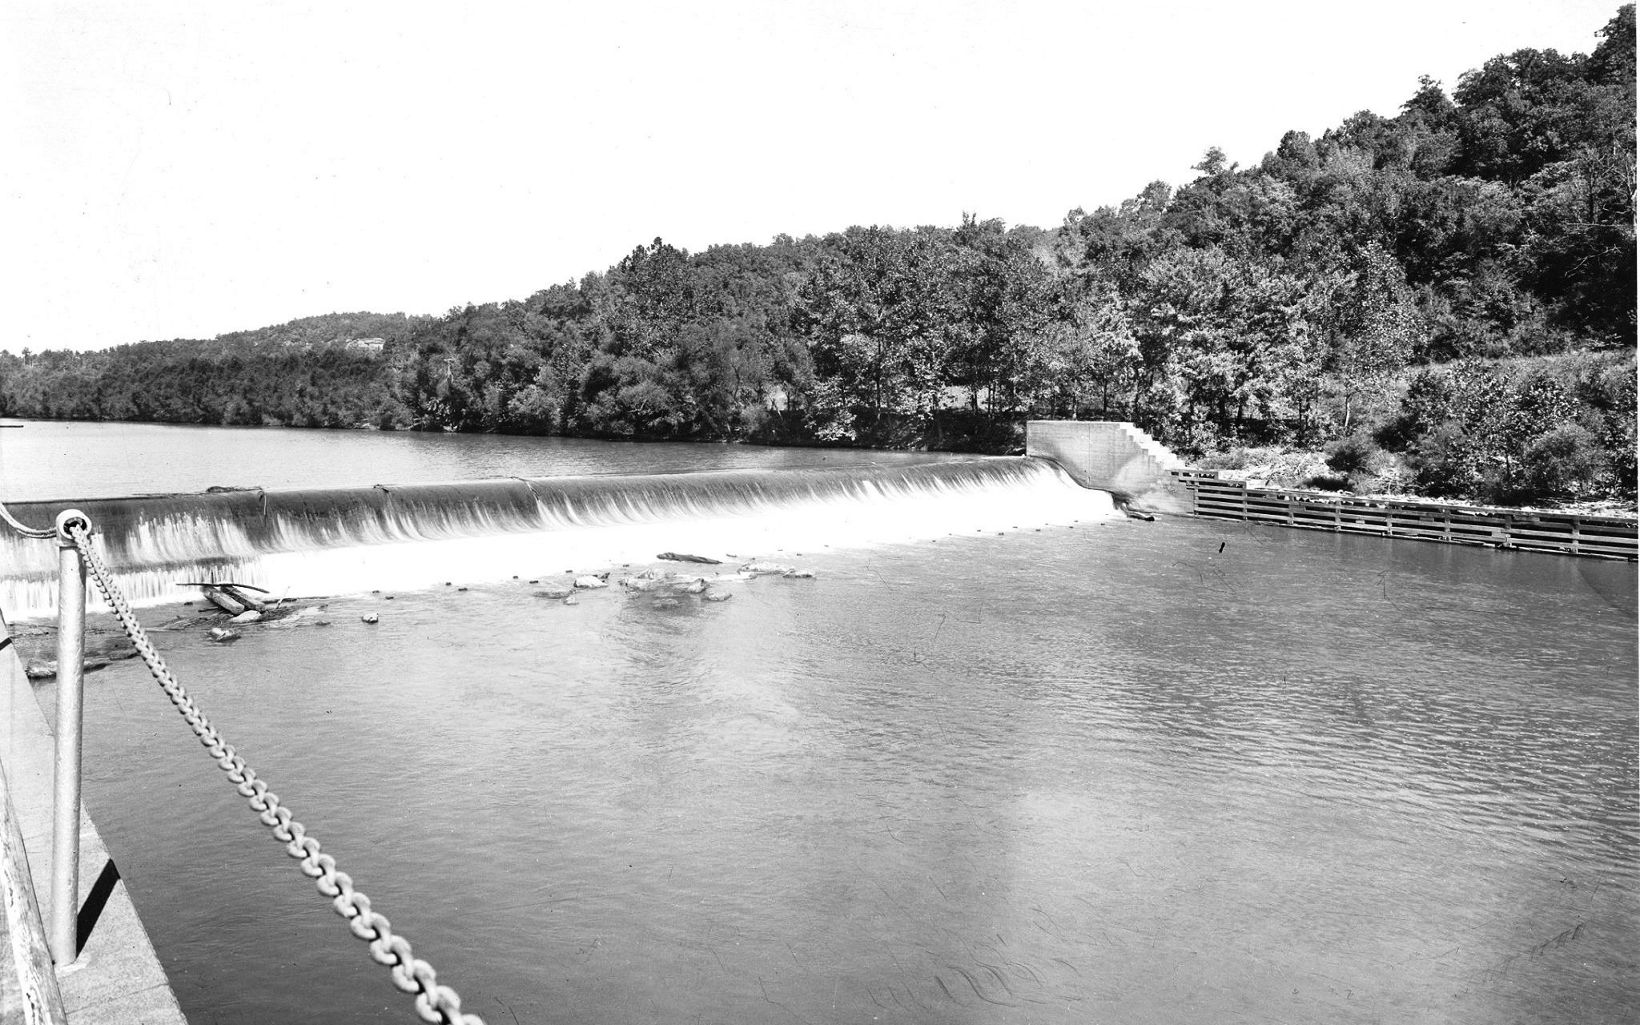 An historic image depicts a barge operating near a dam.